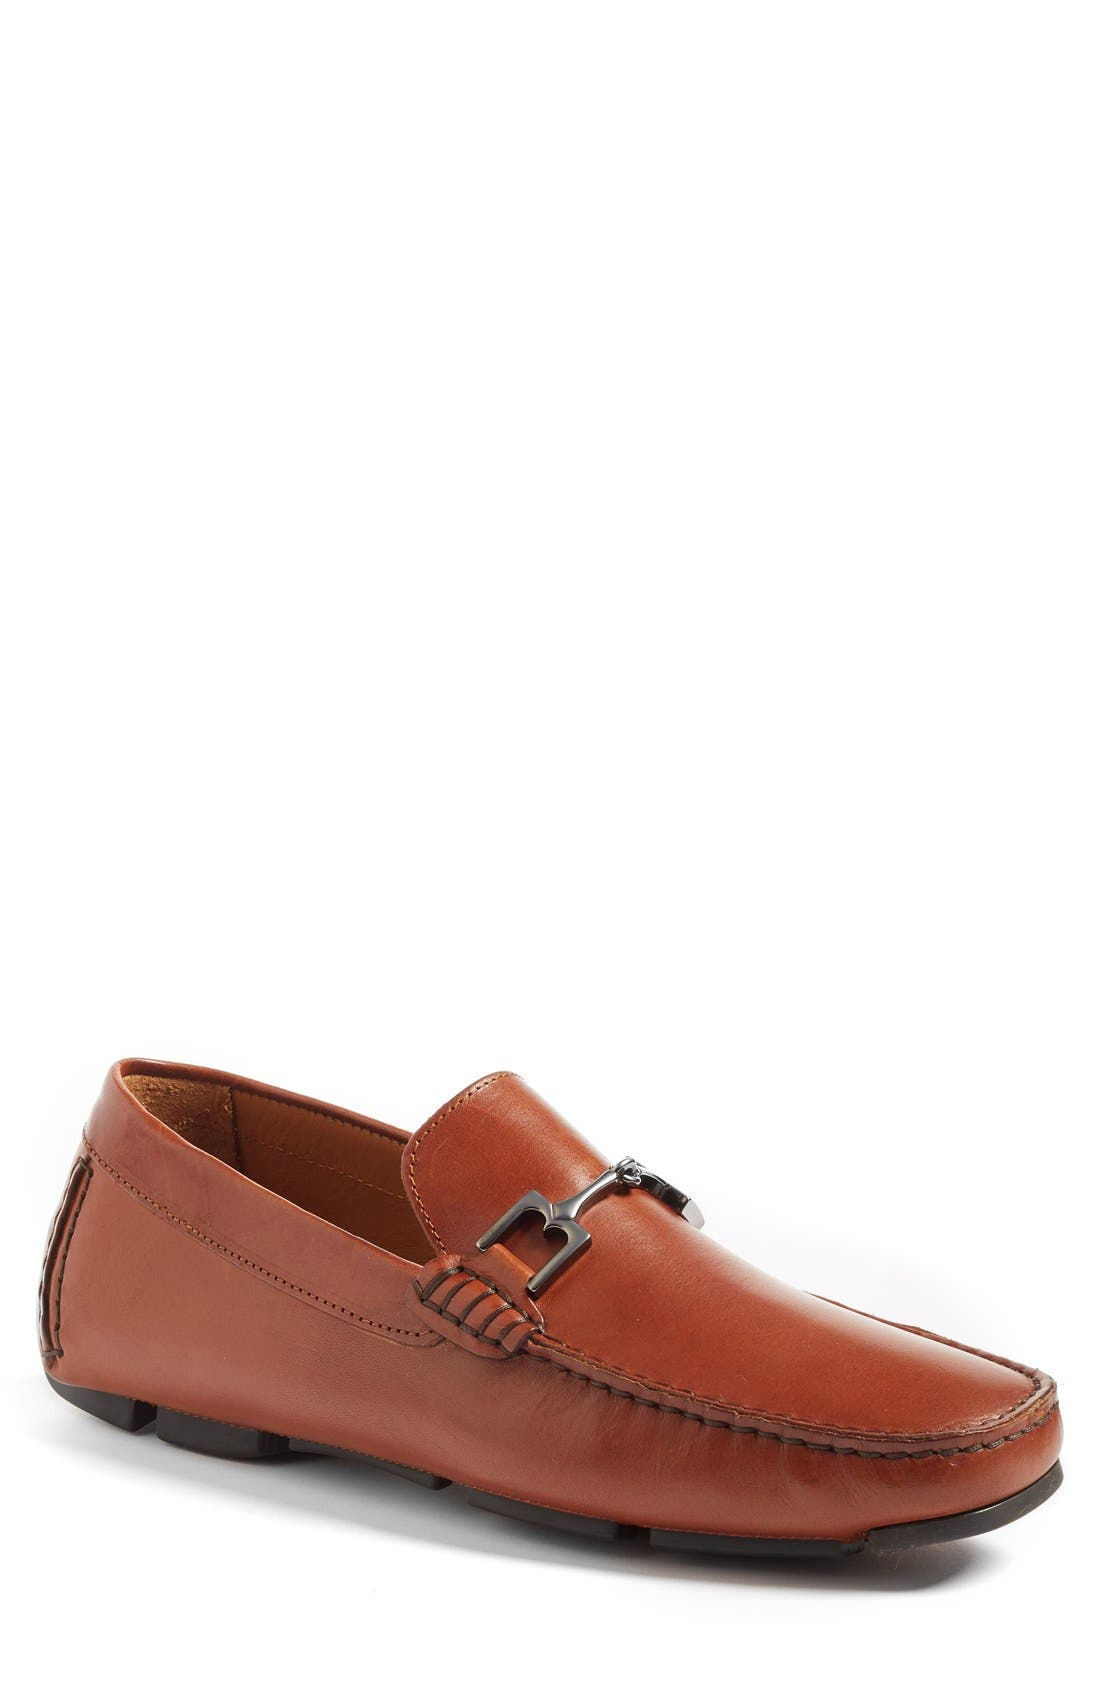 'Monza' Driving Shoe,                         Main,                         color, Cognac Leather